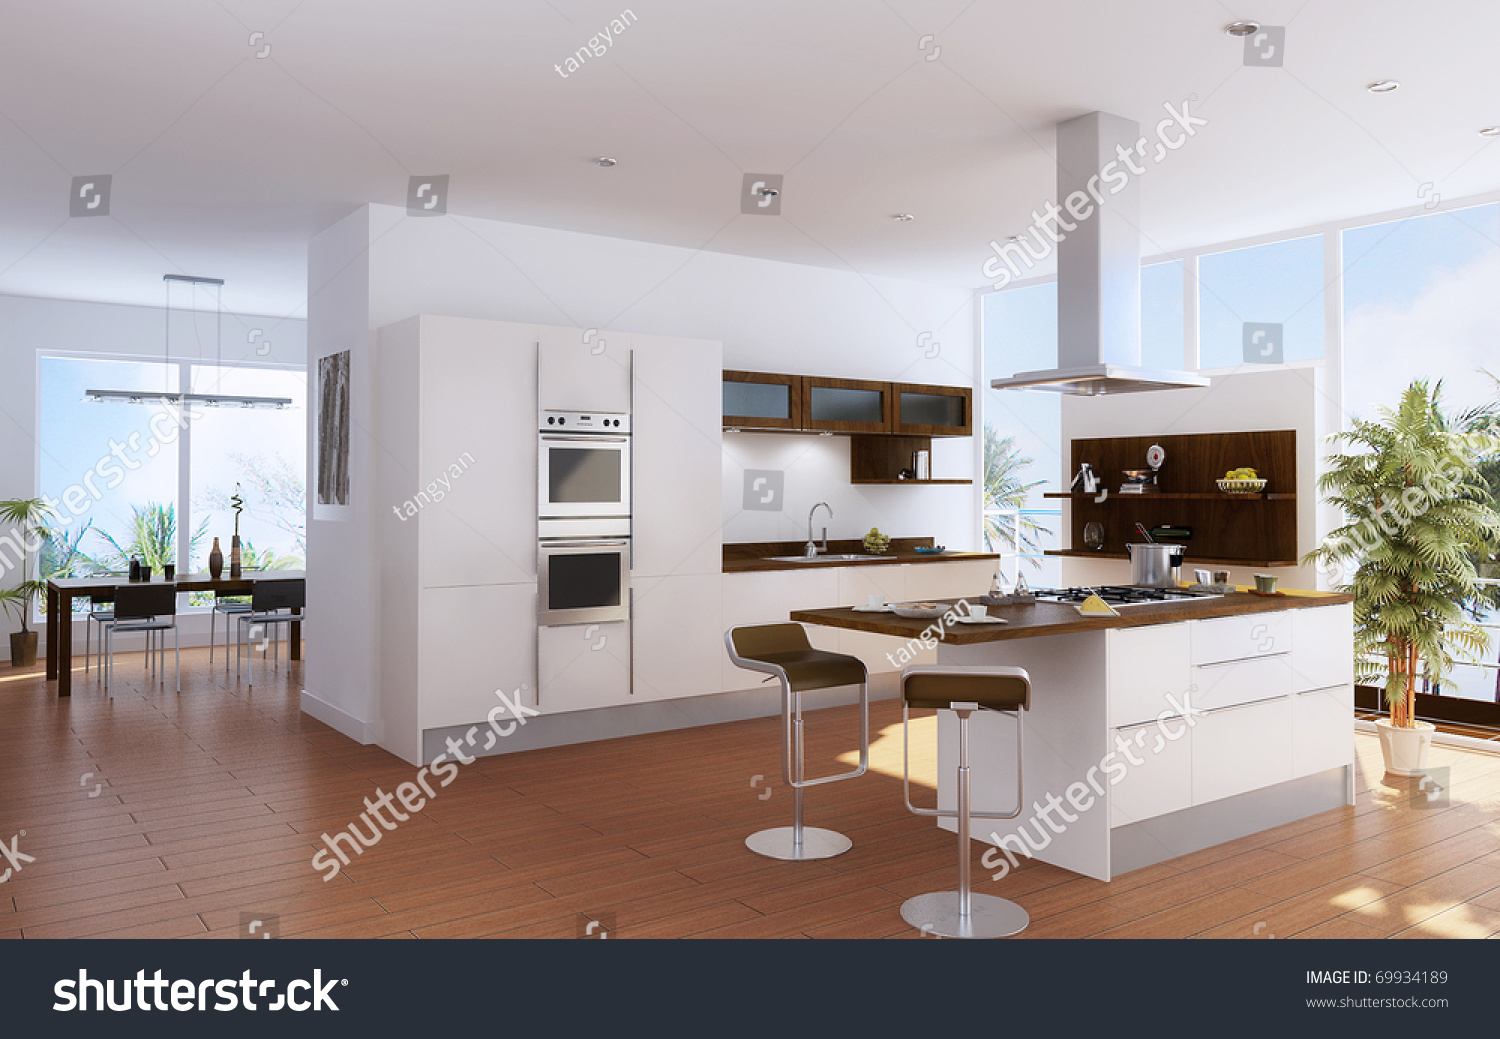 Modern kitchen interior design stock illustration 69934189 - Modern house interior design kitchen ...